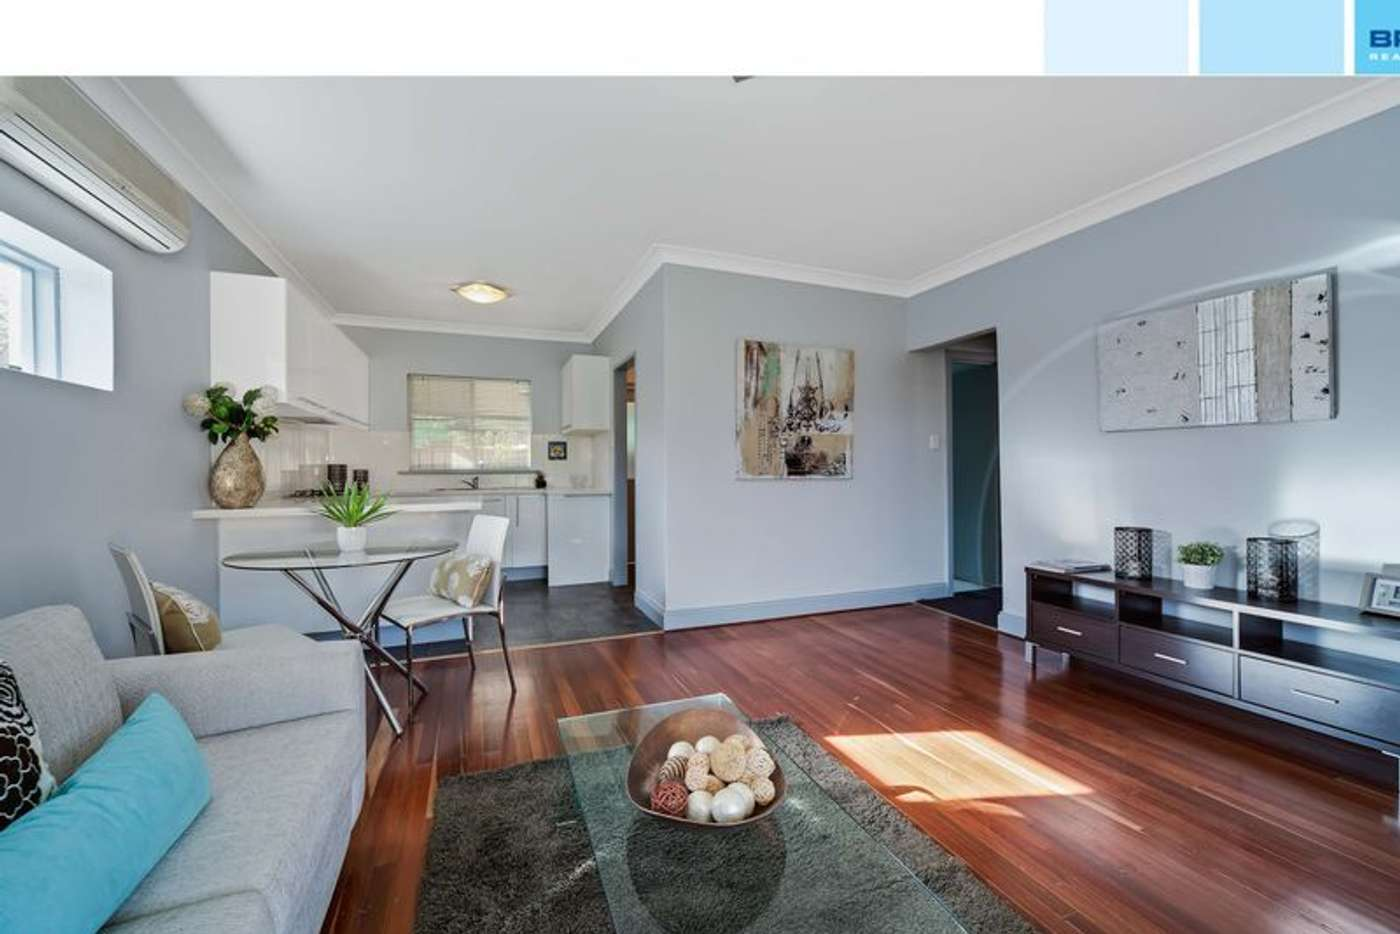 Sixth view of Homely unit listing, 4/5 Holton Street, Glenside SA 5065